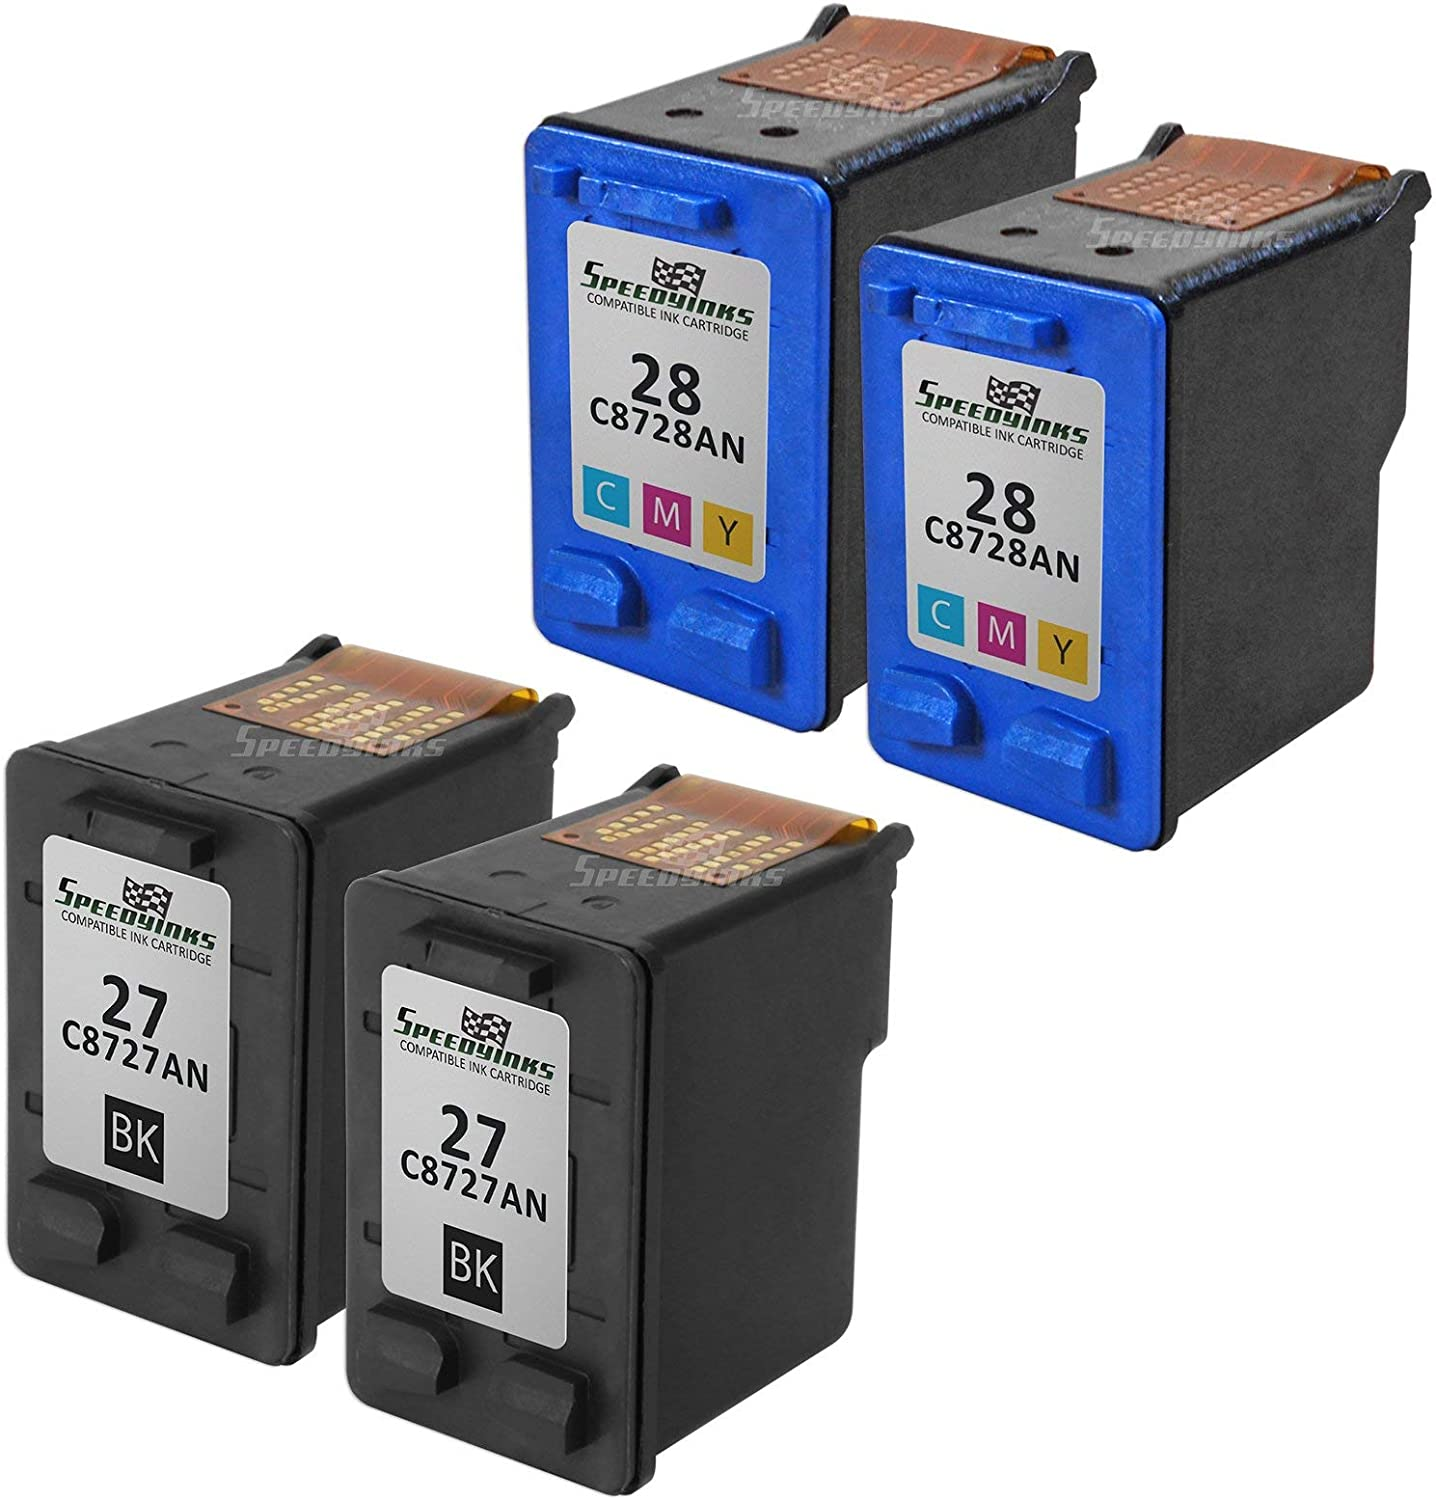 SpeedyInks Remanufactured Ink Cartridge Replacement for HP 27 and HP 28 (2 Black, 2 Color, 4-Pack)